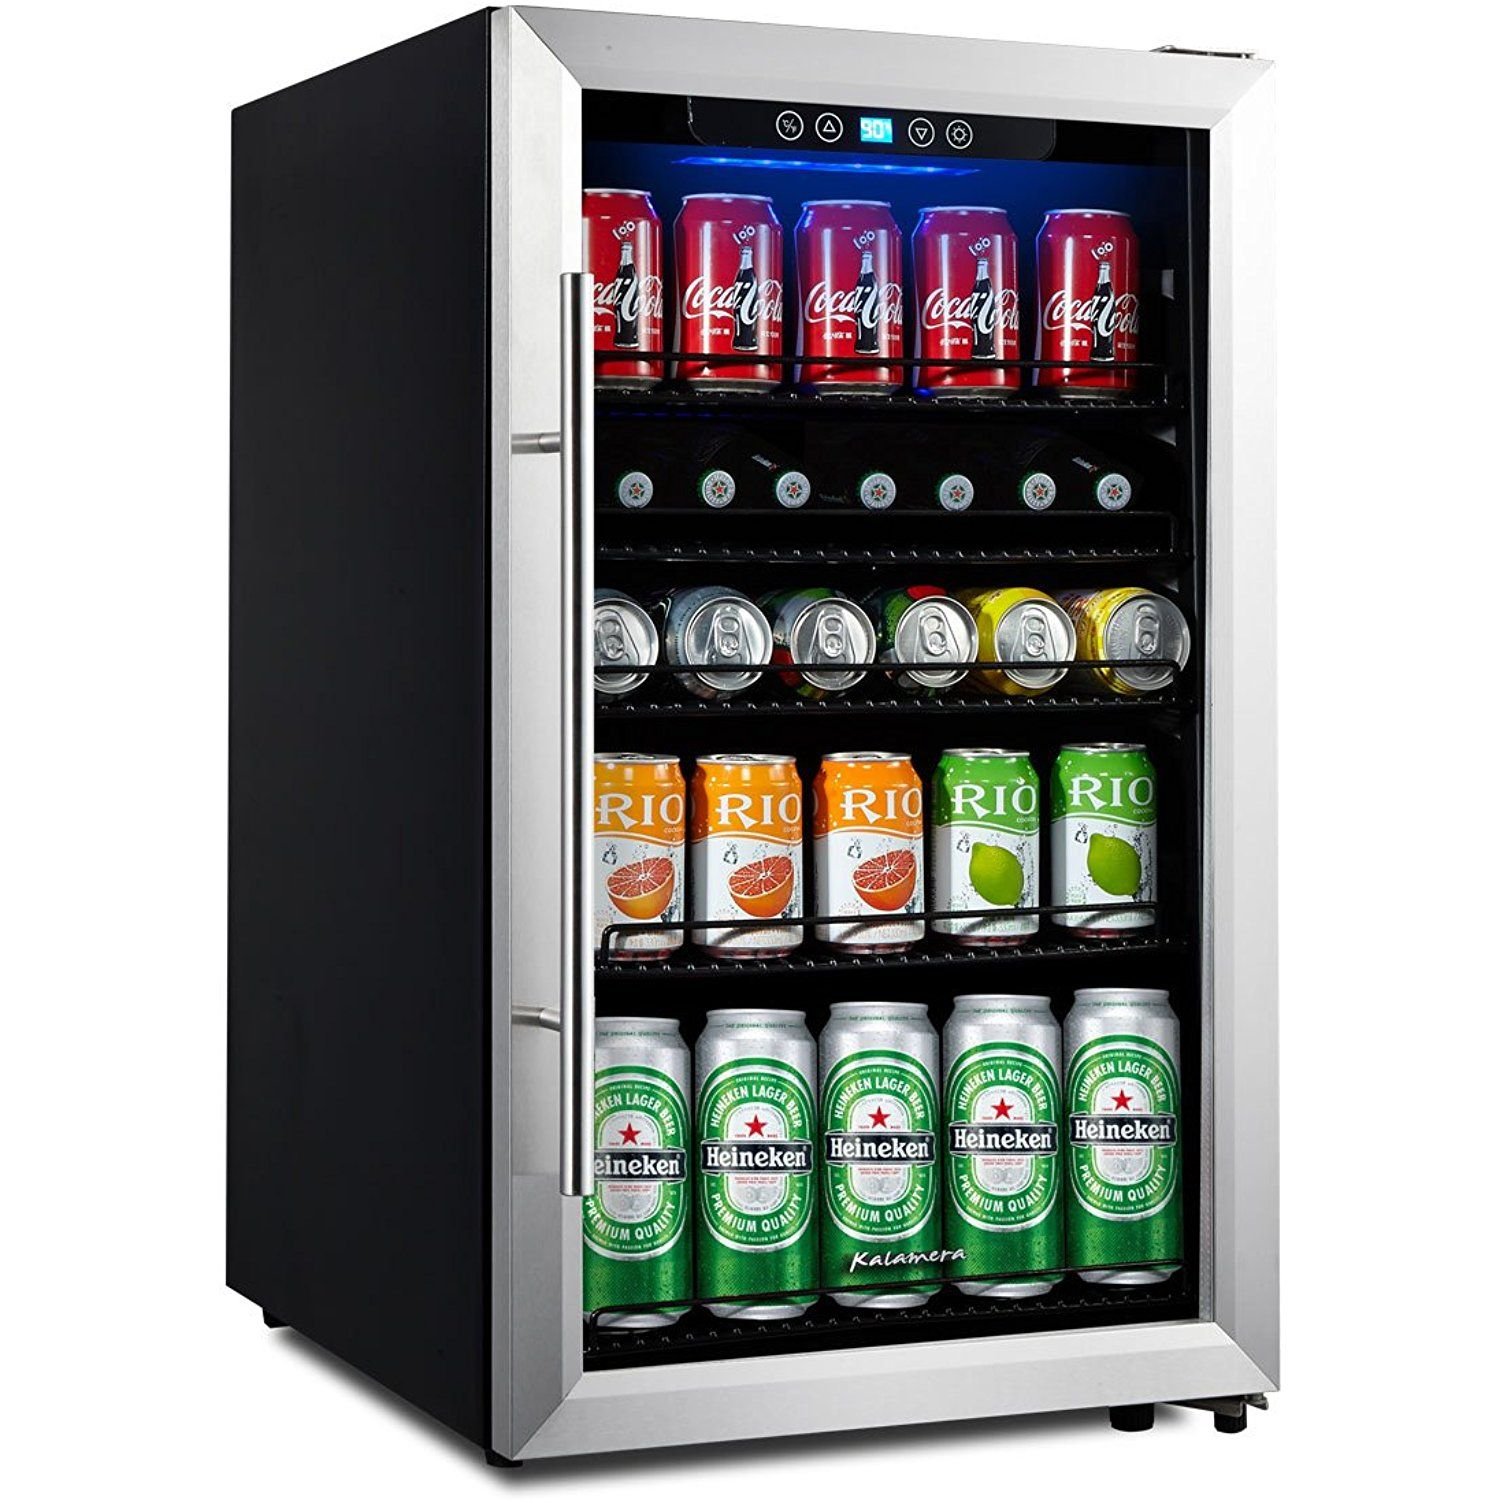 Kalamera 138 can Beverage Refrigerator, Compact and cool